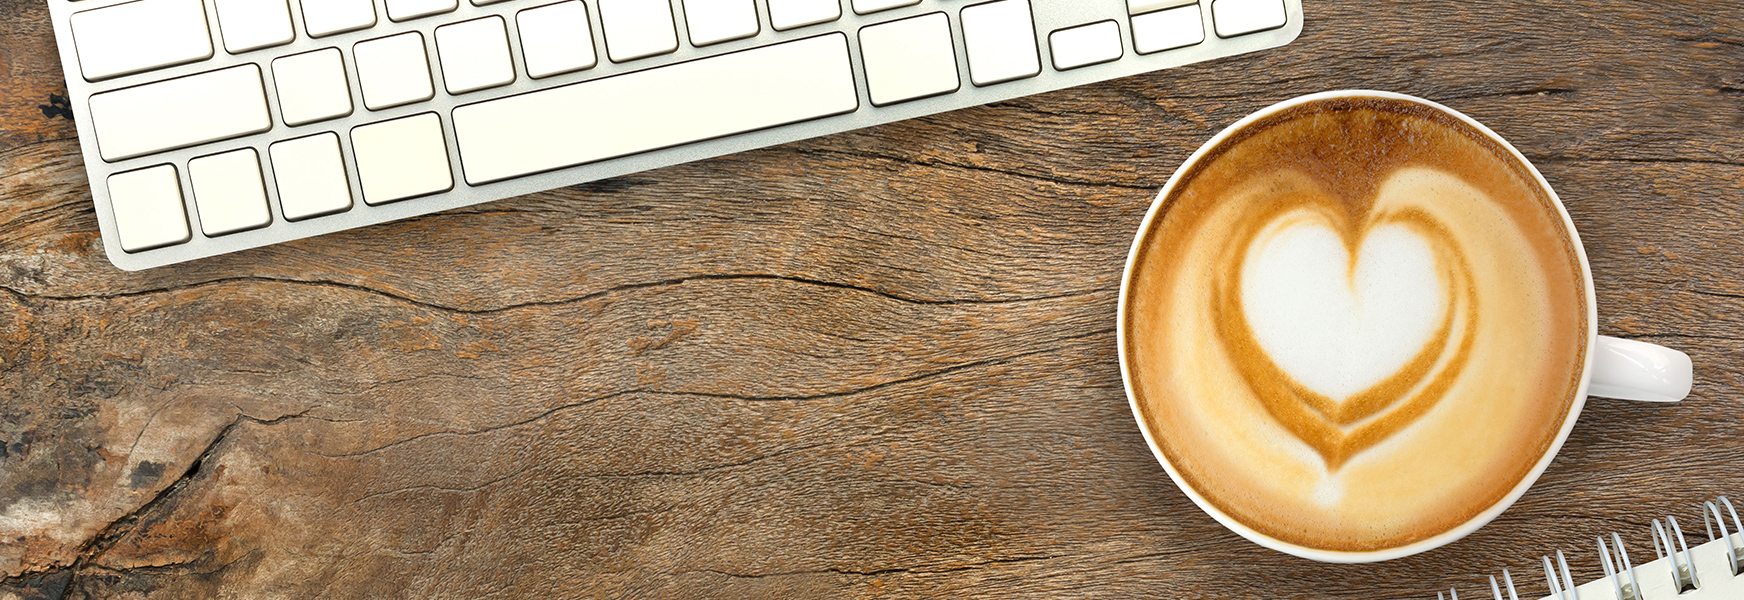 Latte with heart-shaped foam on desk with keyboard and notebook